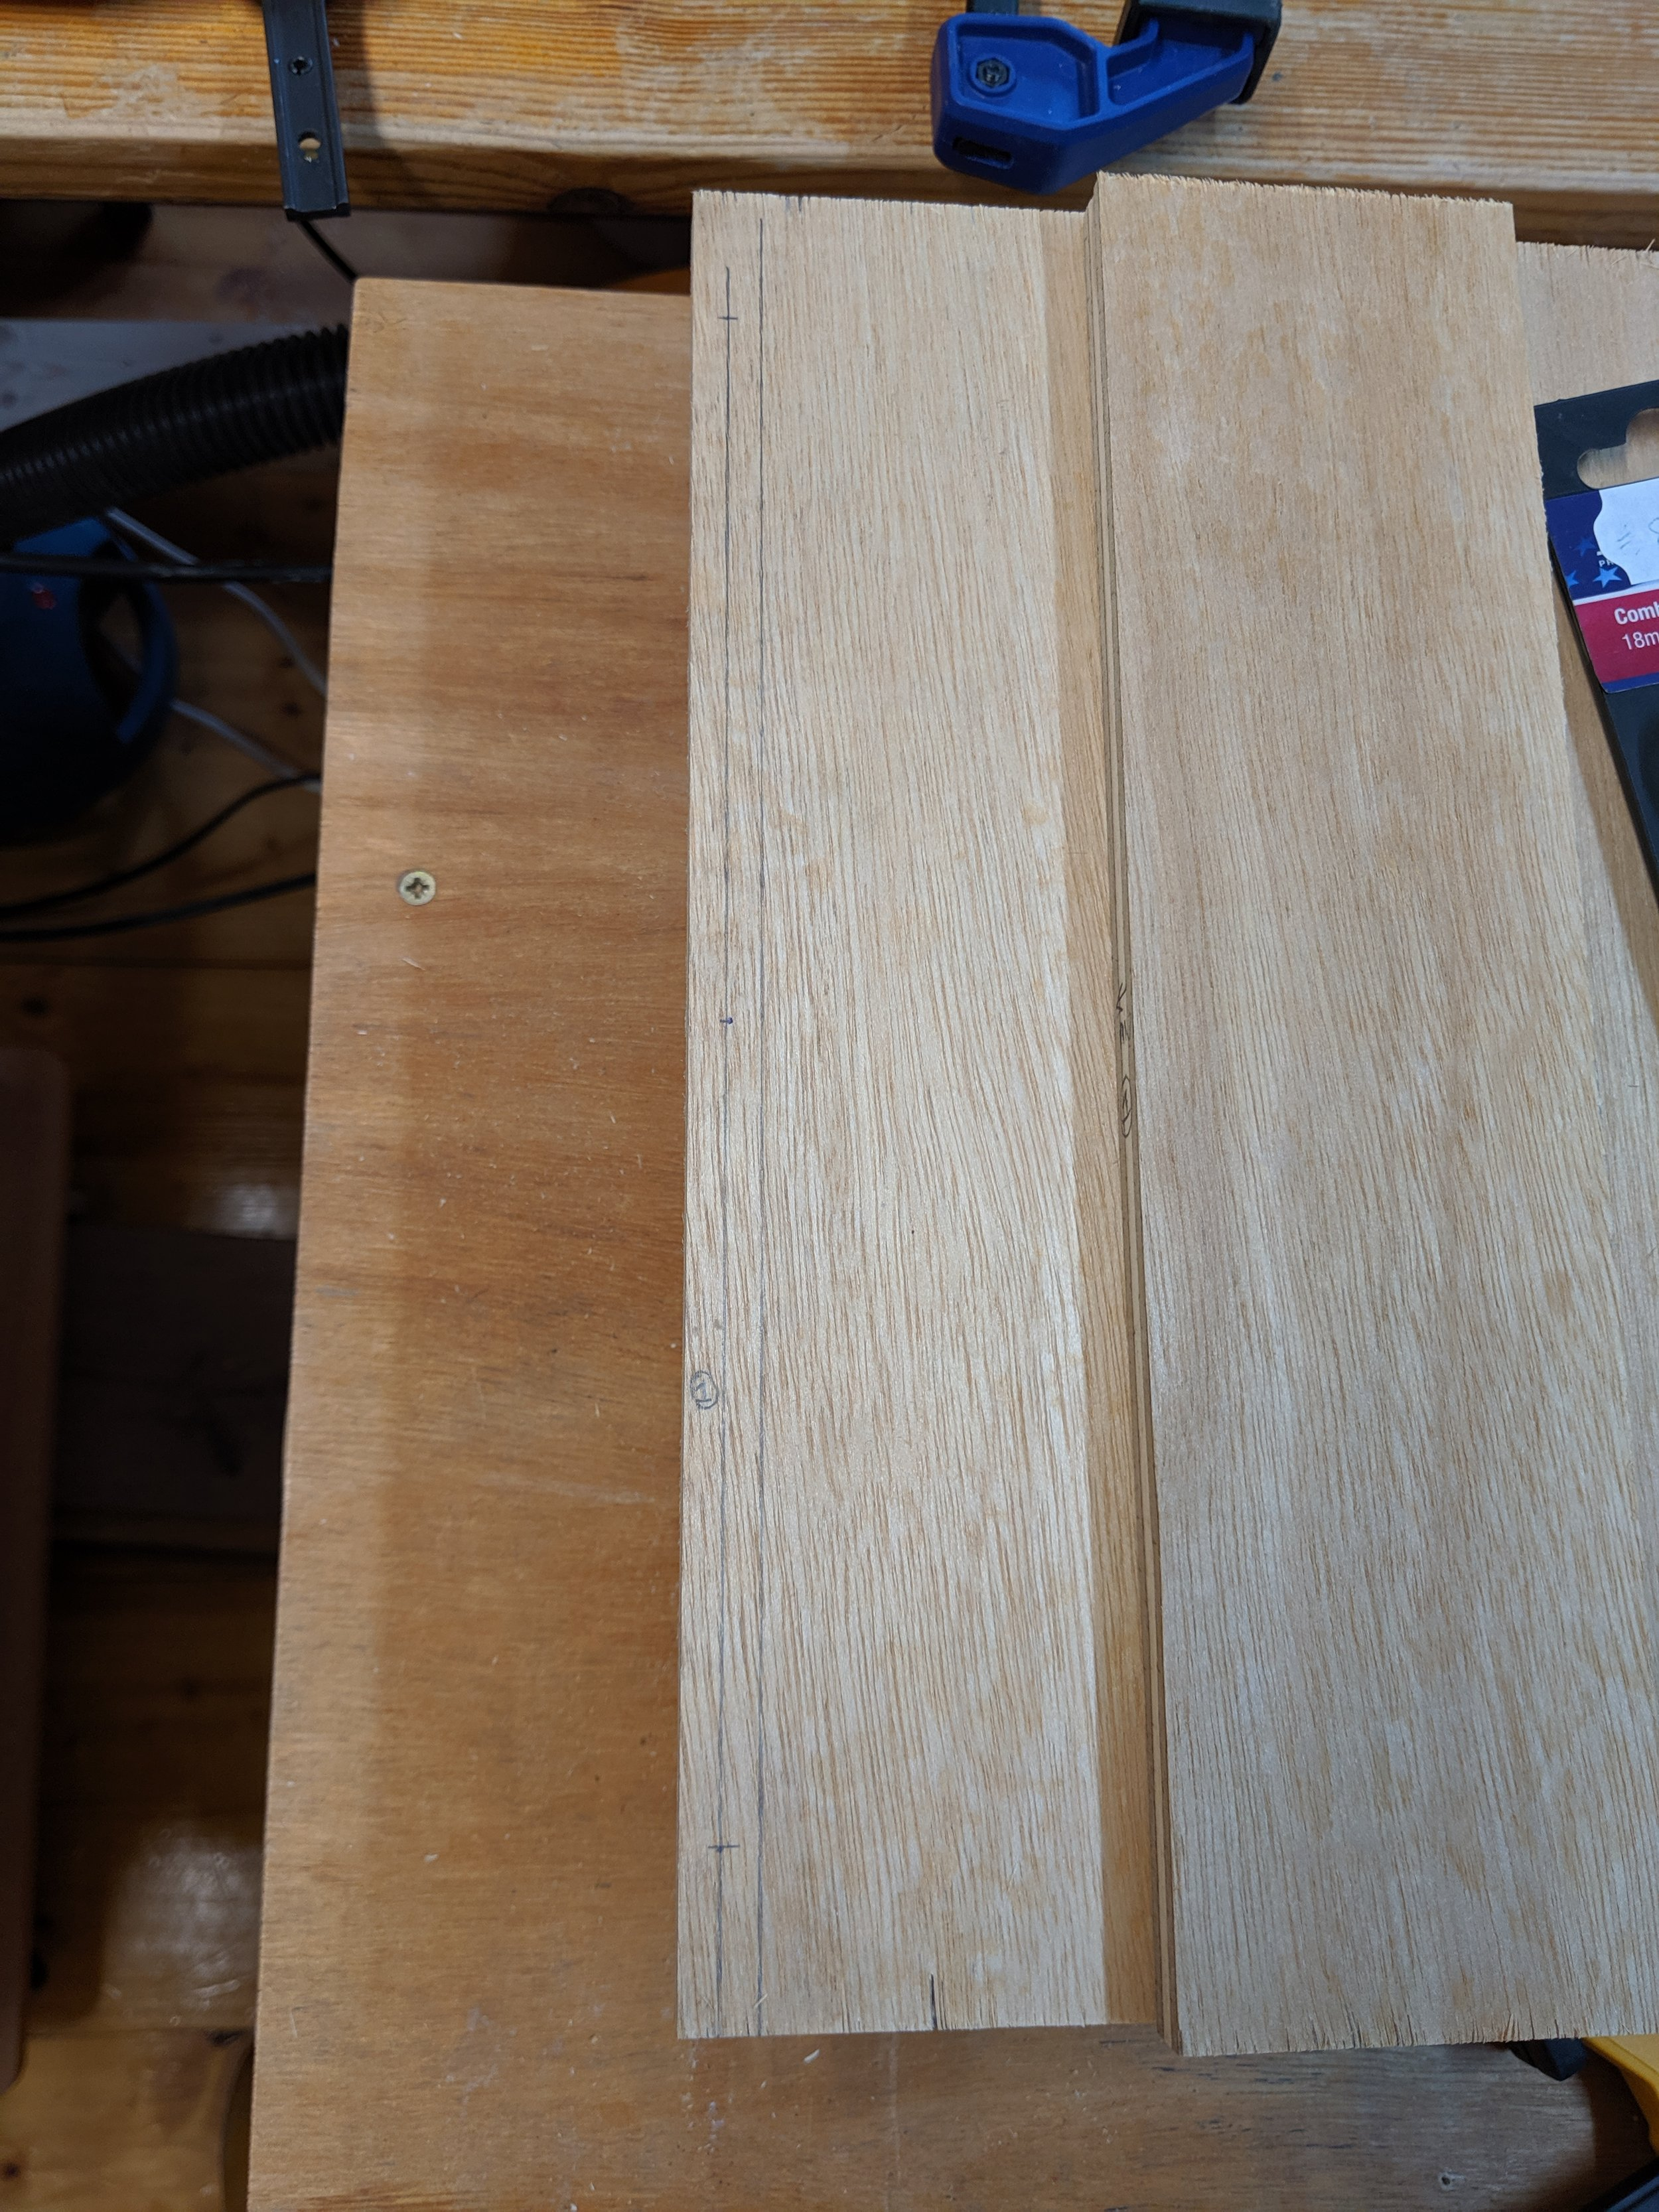 Confirming matching dowel positions in end piece